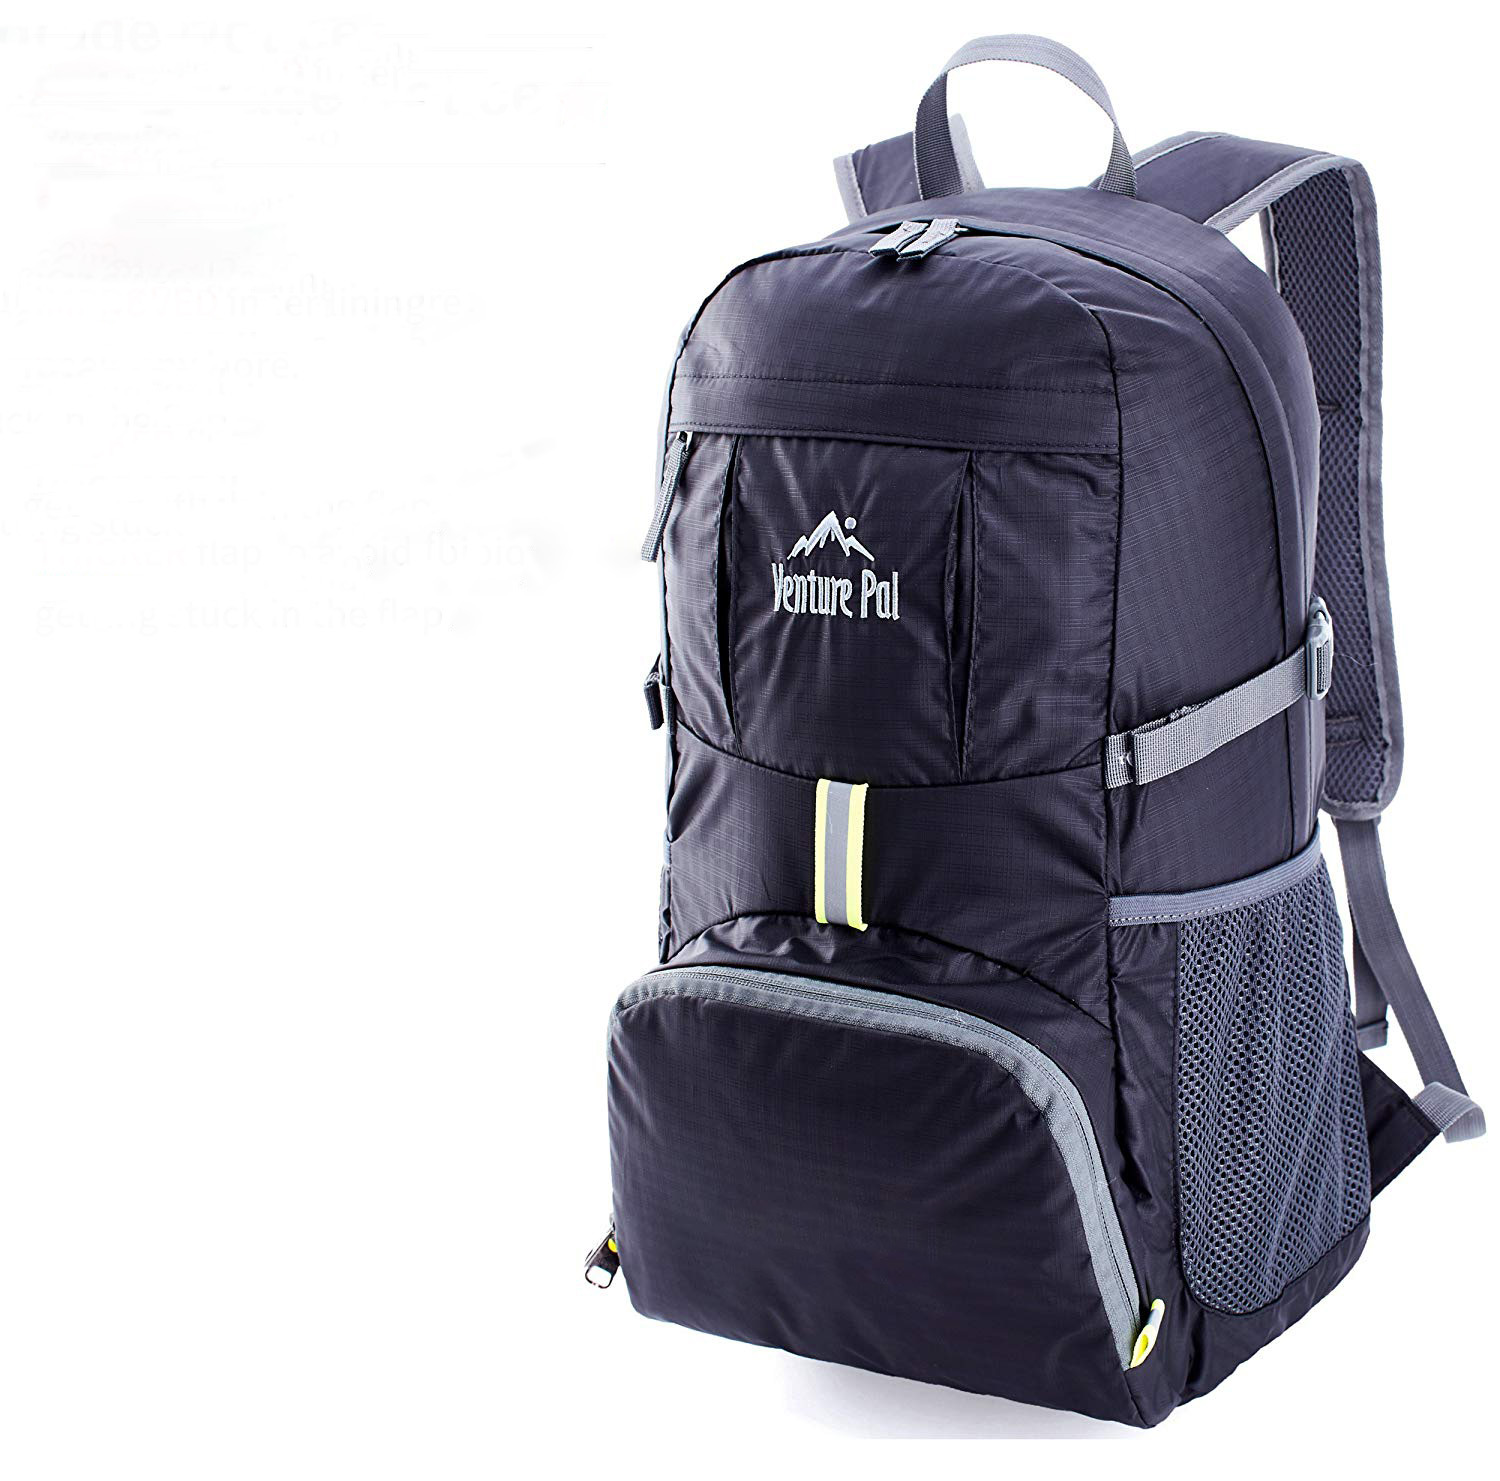 Alliance waterproof backpack manufacturers with good price for hiking-1